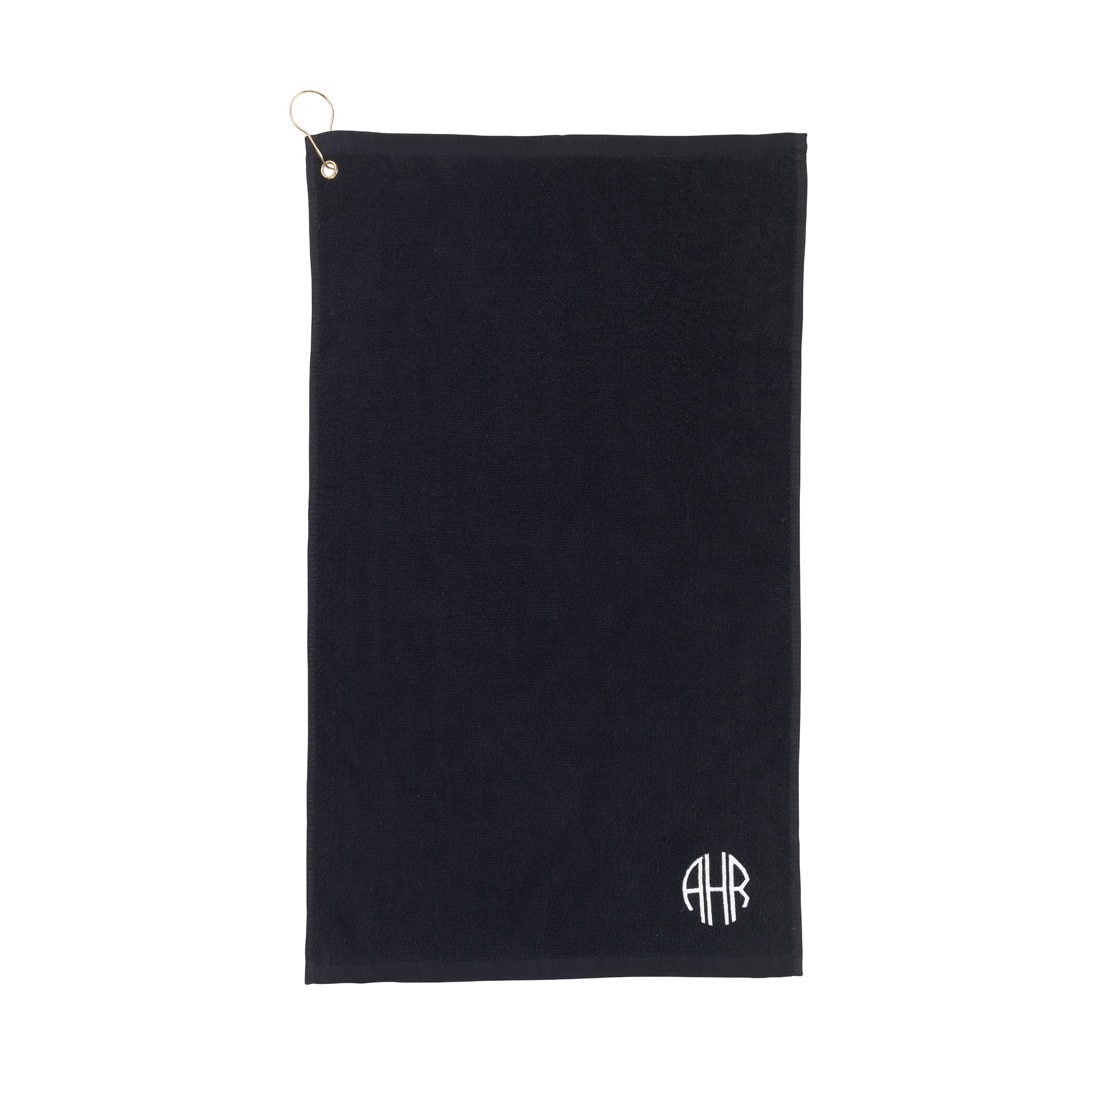 Monogrammed Black Golf Towel